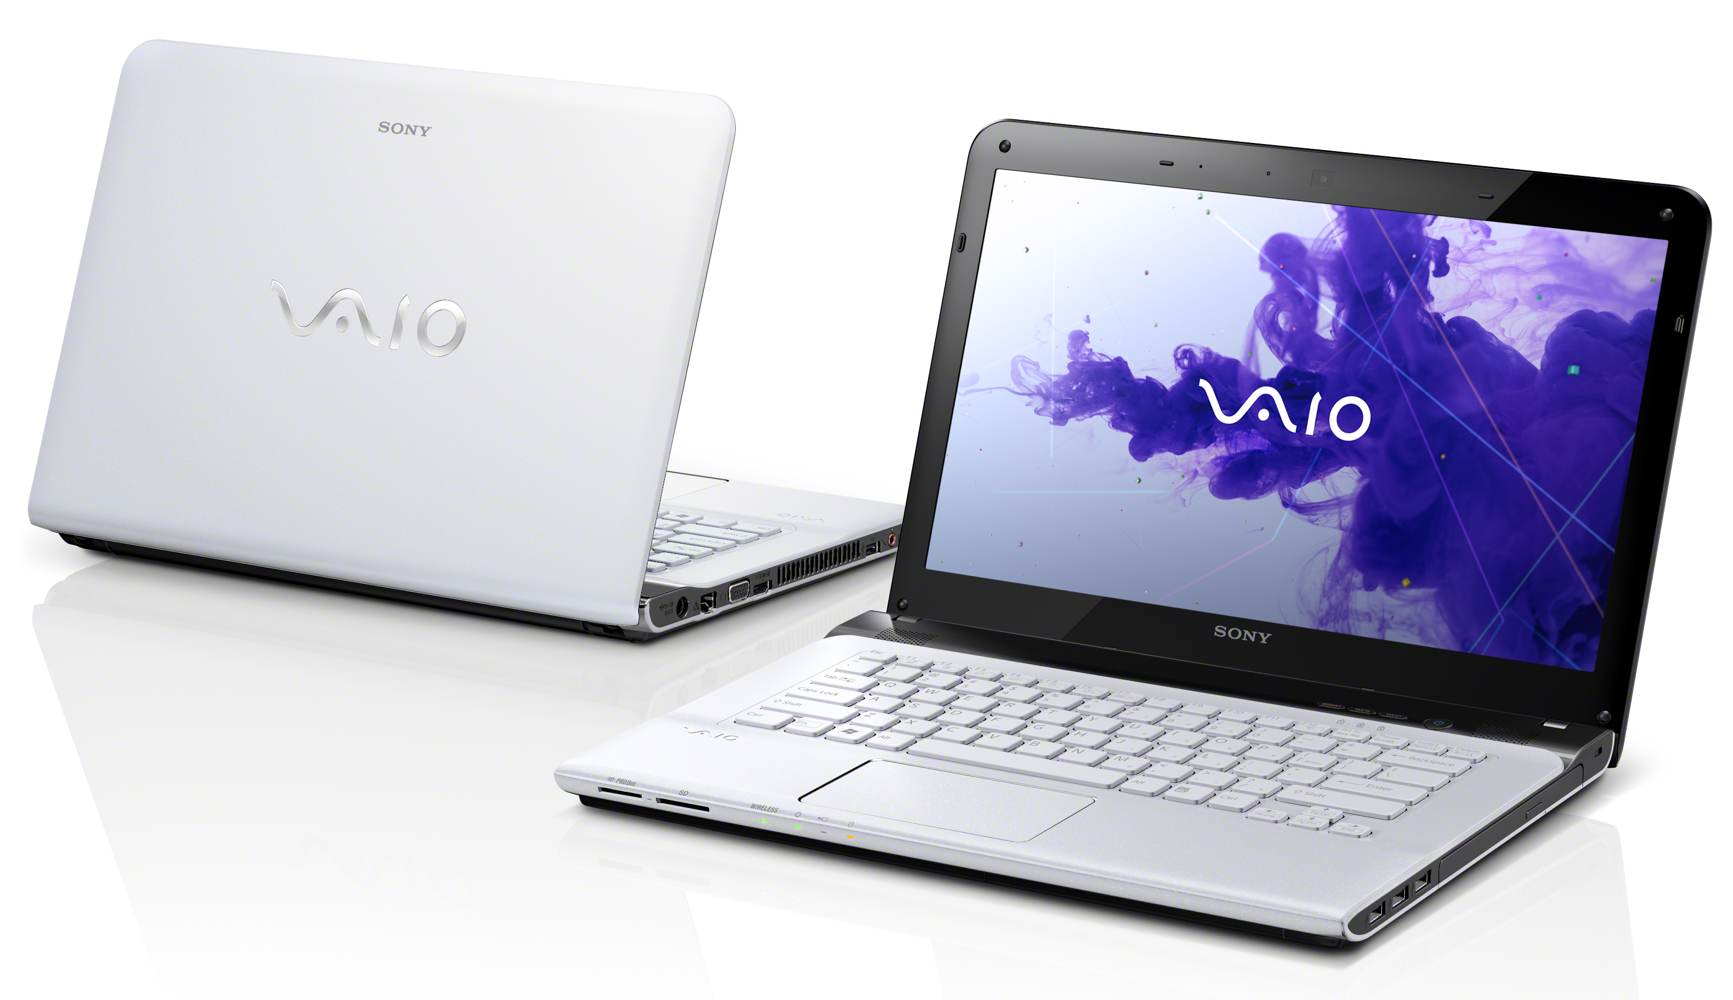 Sony vaio e14 series sve14126cxw 14 inch laptop white for 14 inch window